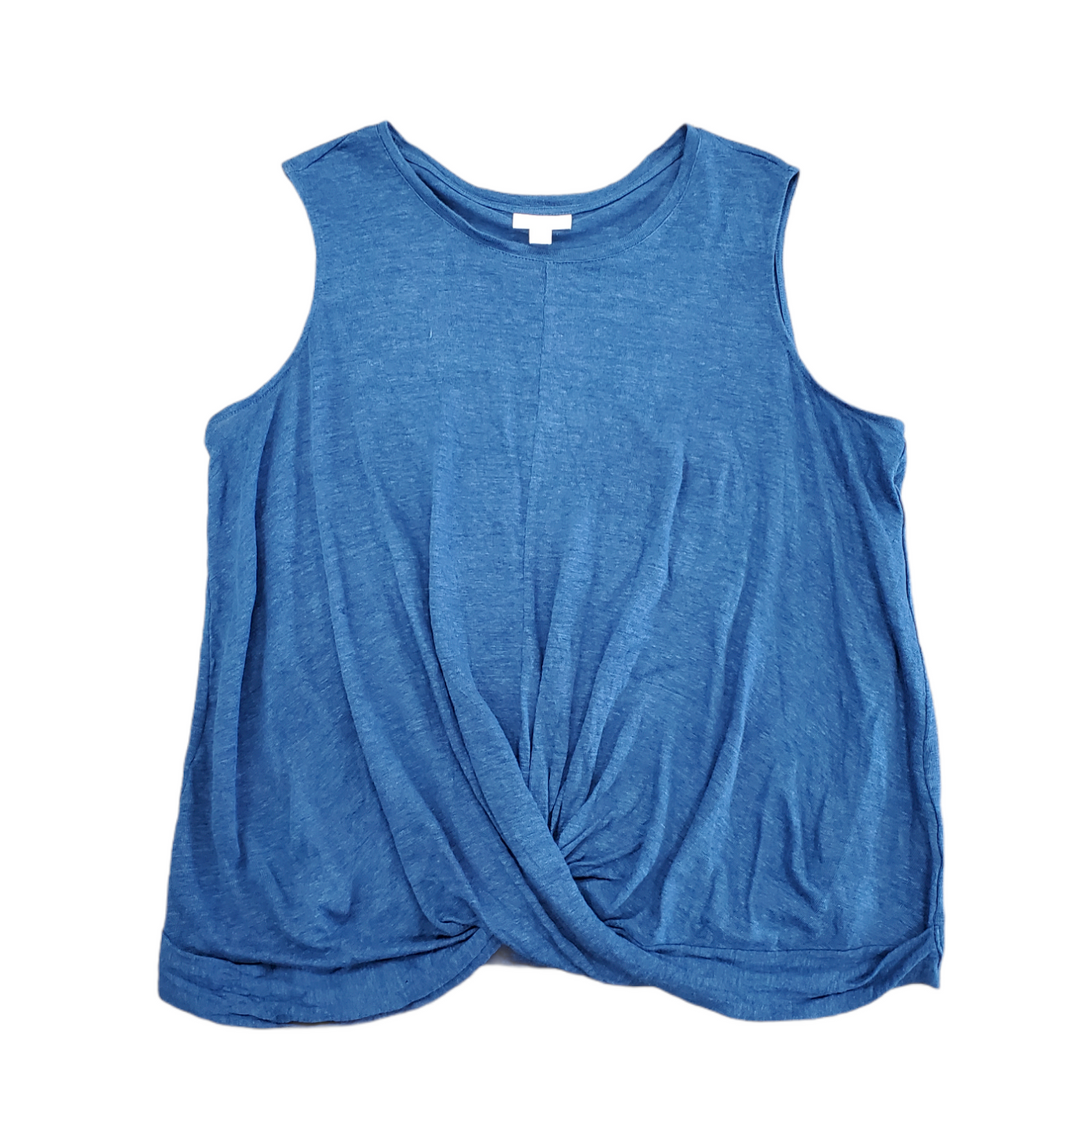 Primary Photo - BRAND: J JILL <BR>STYLE: TOP SLEEVELESS <BR>COLOR: BLUE <BR>SIZE: 1X <BR>SKU: 196-196112-57022<BR><BR>100% LINEN